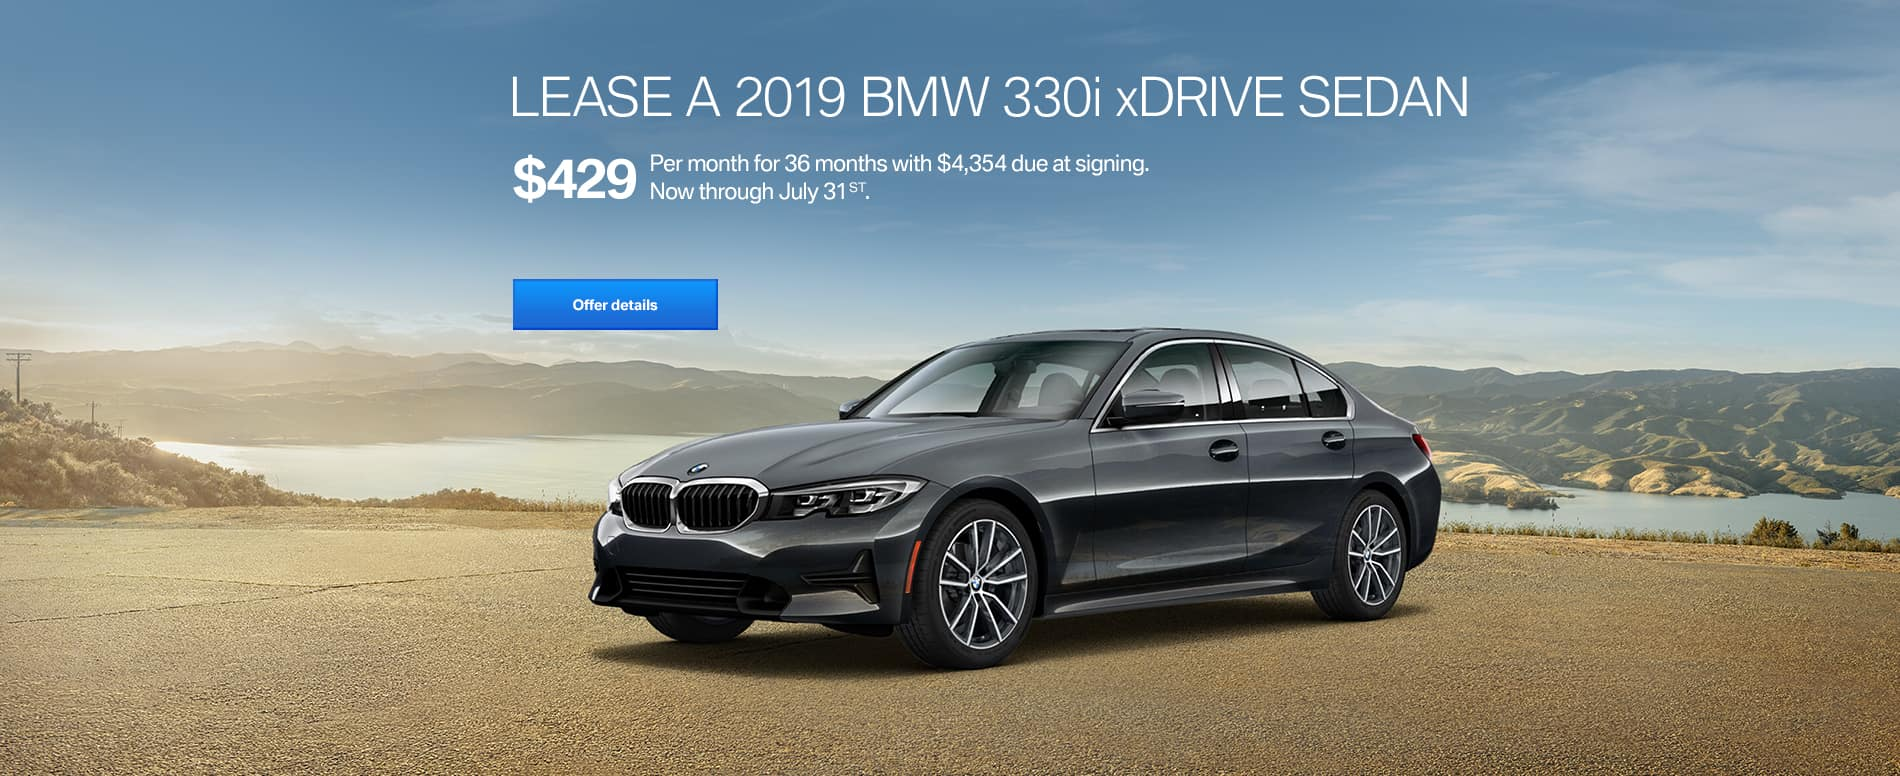 2019 BMW 330i Xdrive May